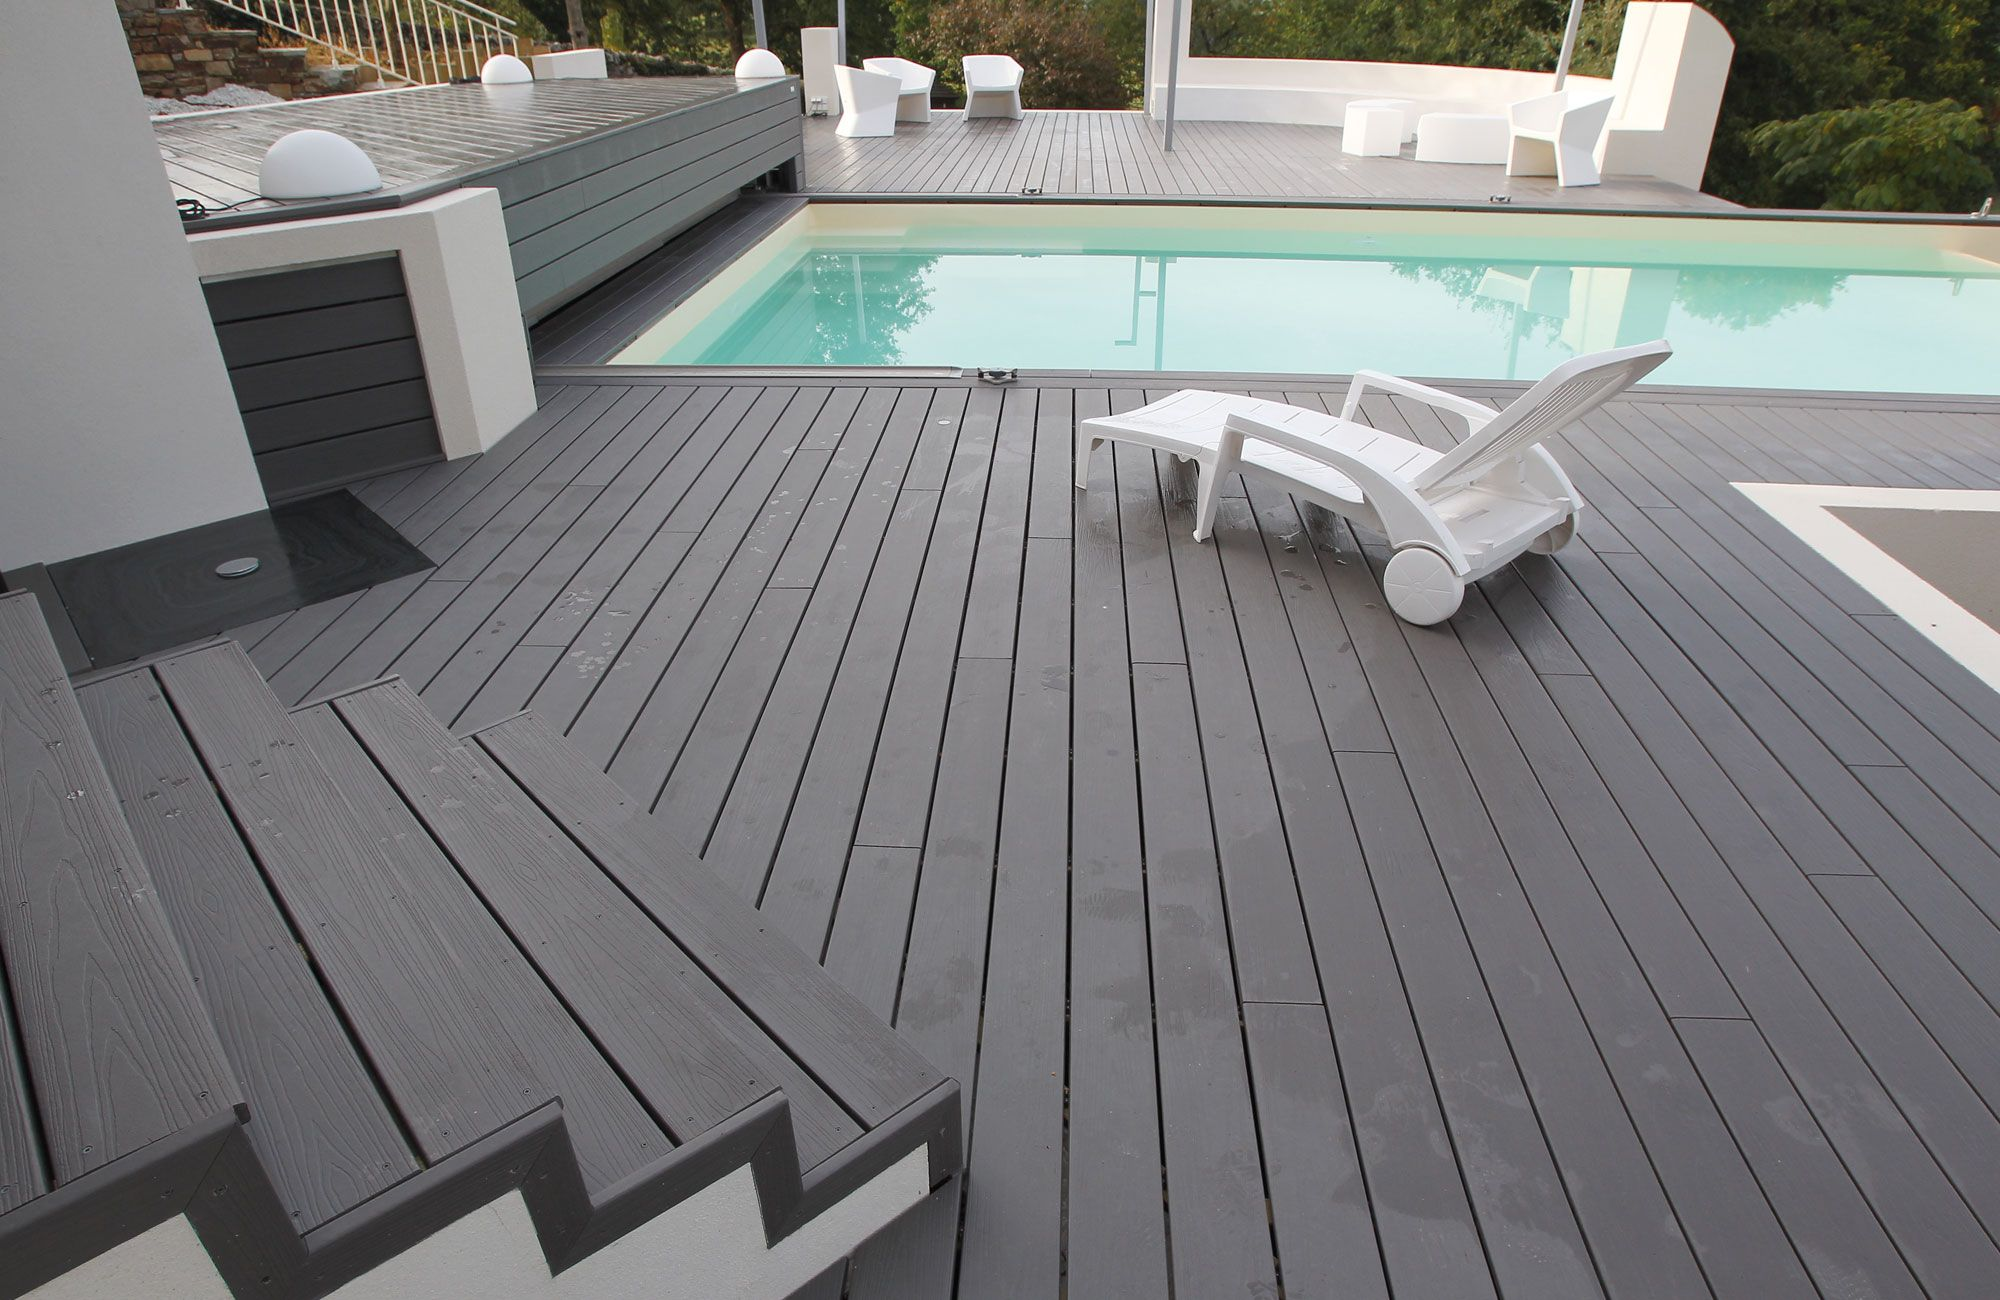 Australia Deck Tiles Suppliers Australian Anti Termite Wpc Decking Supplier A Wpc Fence And Deck Wholesaler Decking Suppliers Wpc Decking Decking Material